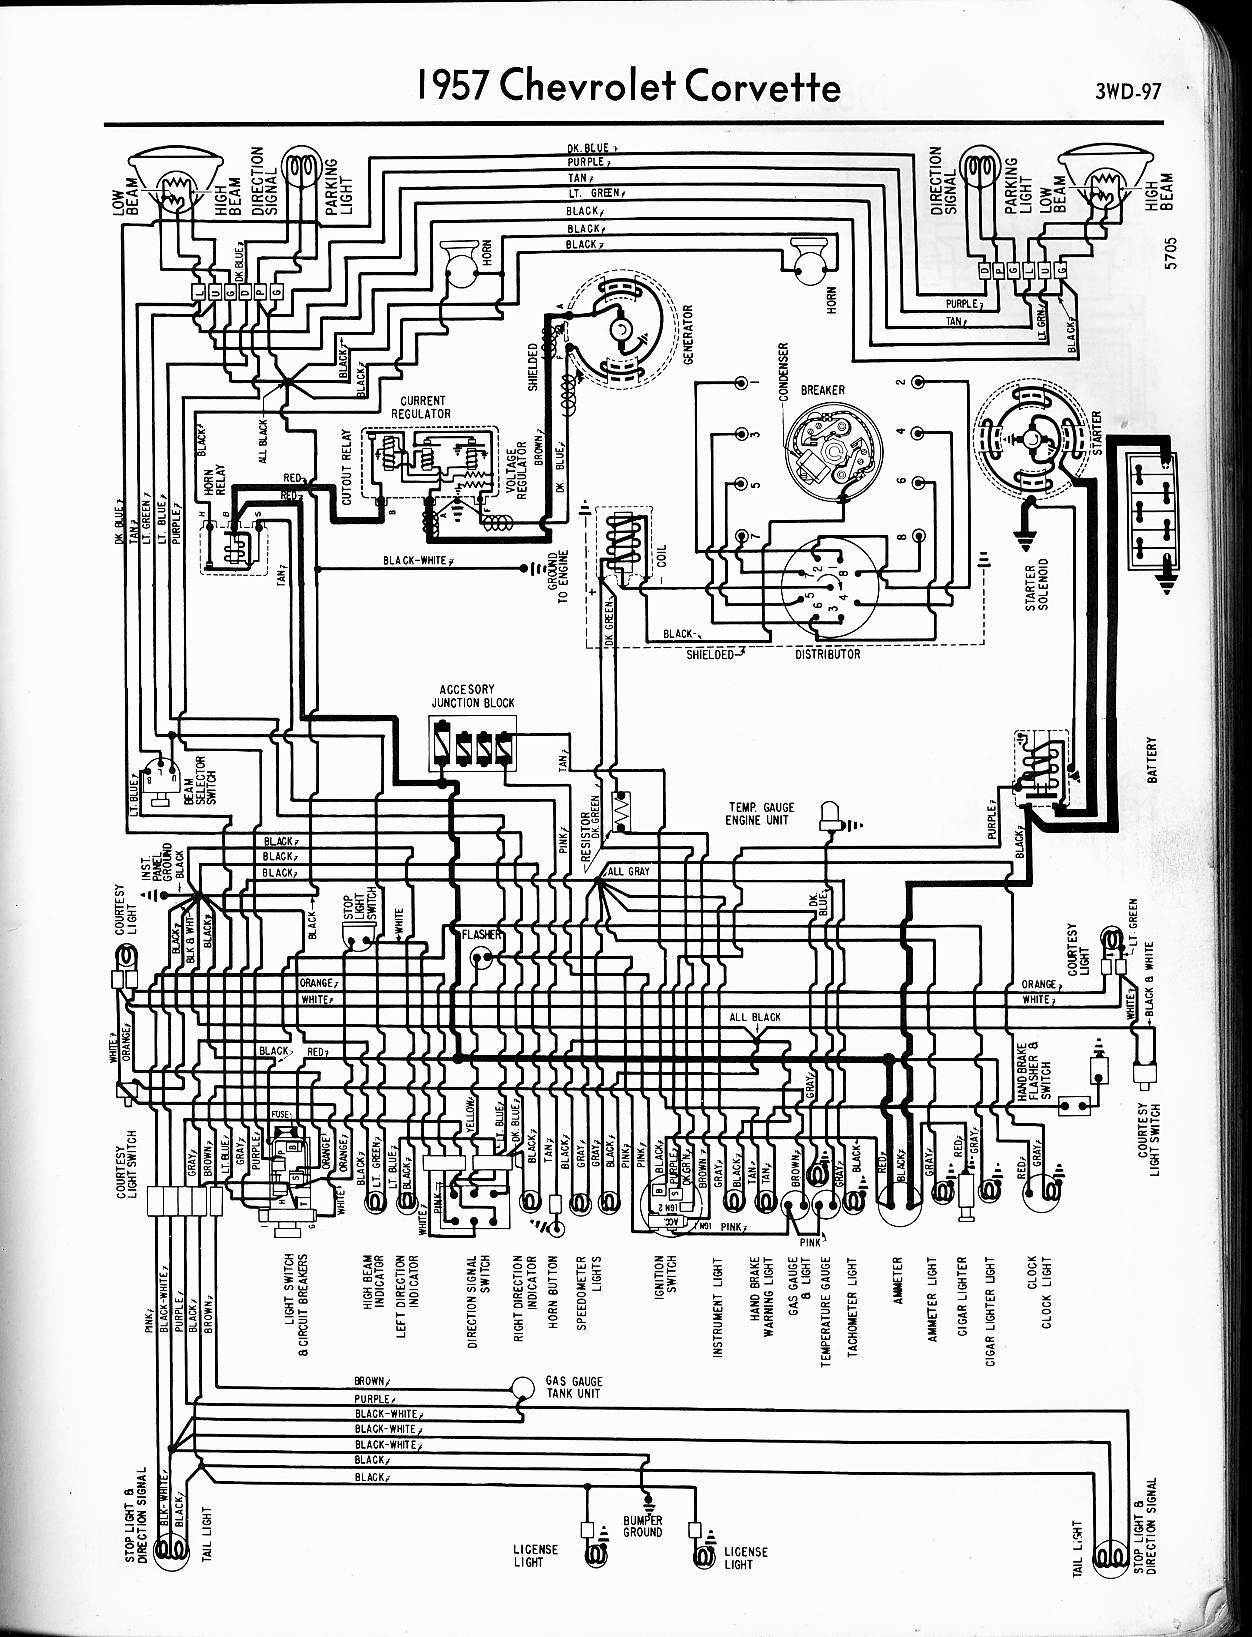 MWireChev57_3WD 097 57 65 chevy wiring diagrams wiring diagrams for chevy trucks at gsmx.co